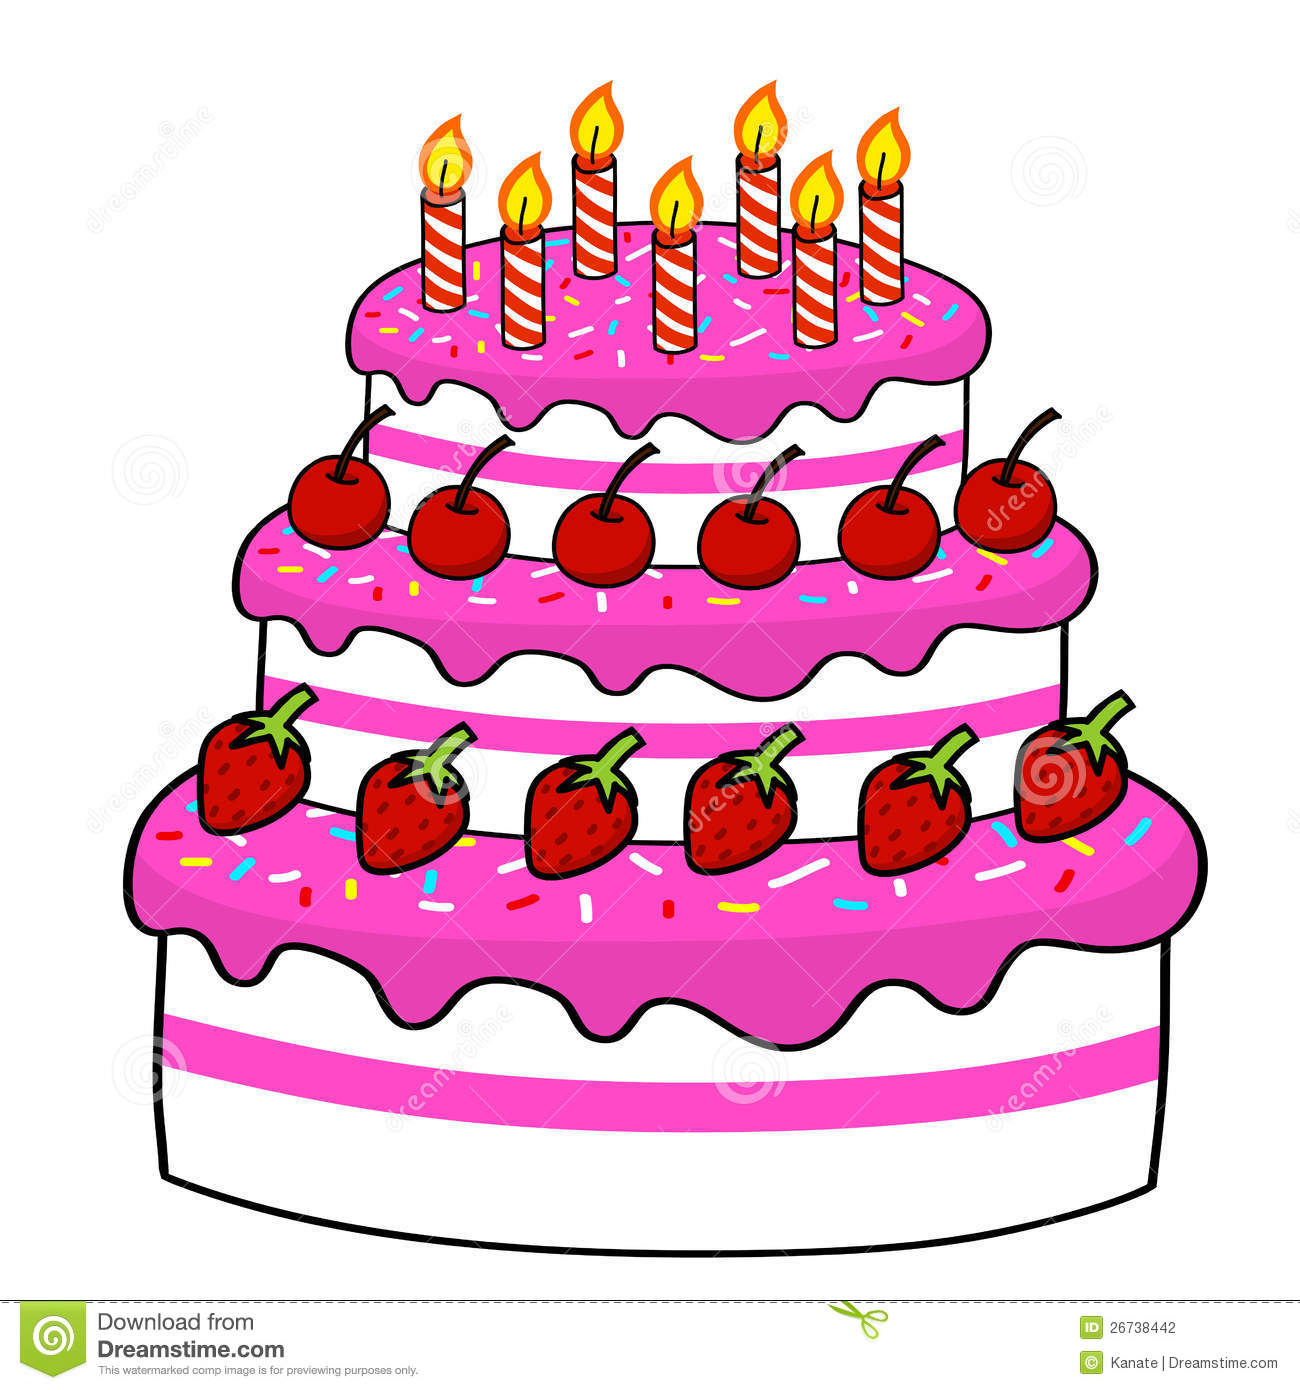 Cartoon Images For Cake : Cartoon Cake Hand Drawing Stock Photography - Image: 26738442